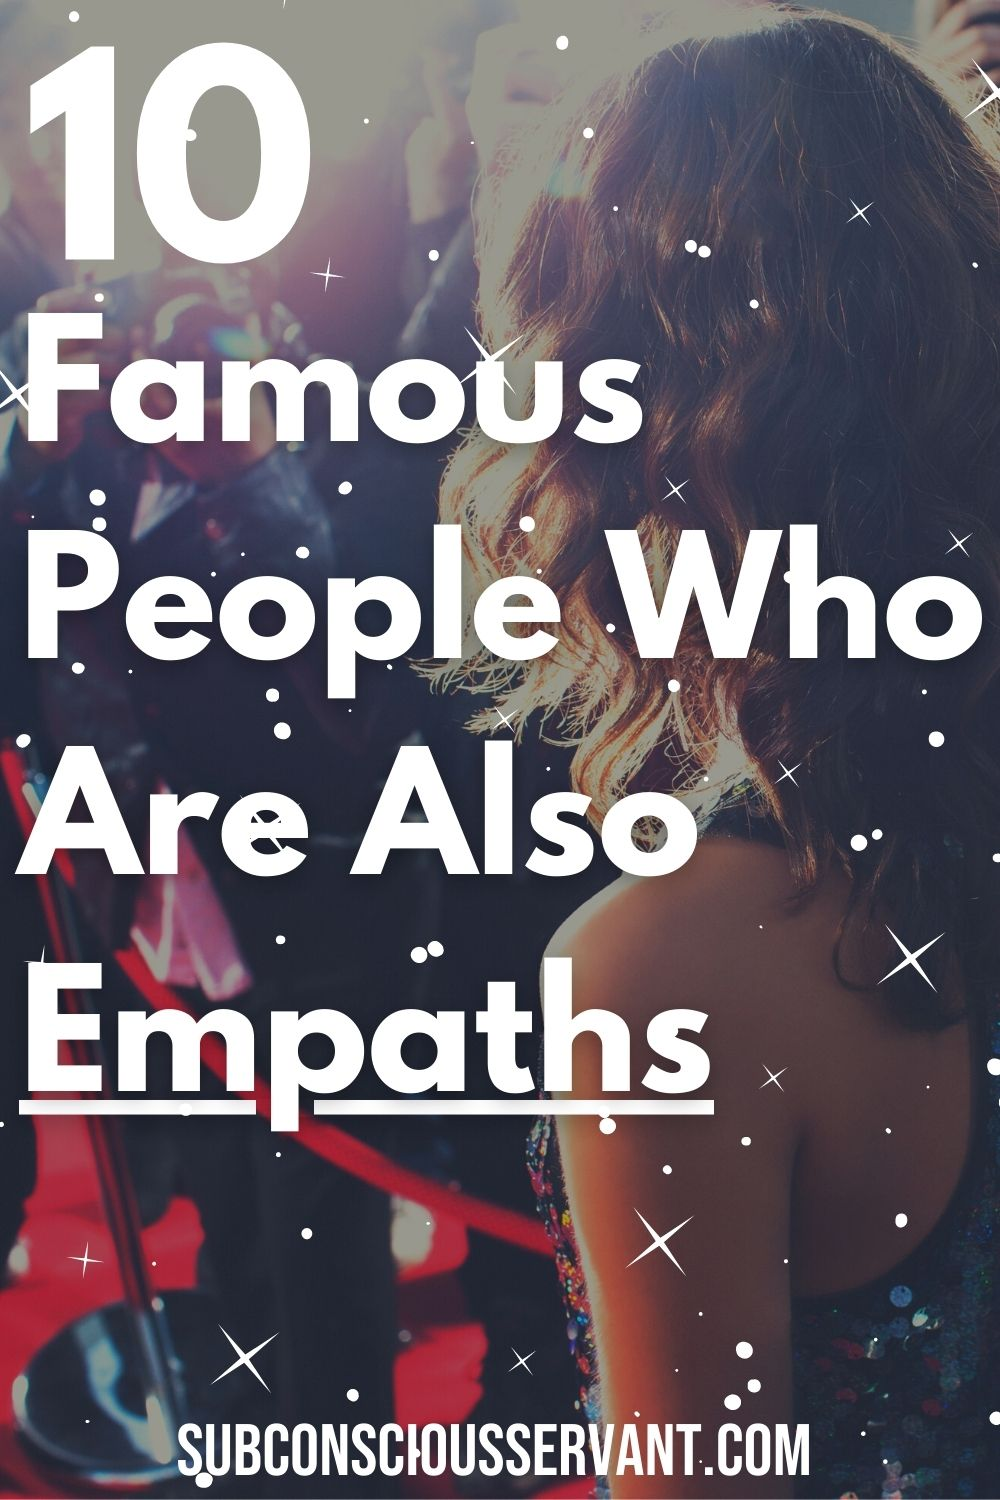 10 Famous Empaths - Some Of These May Surprise You